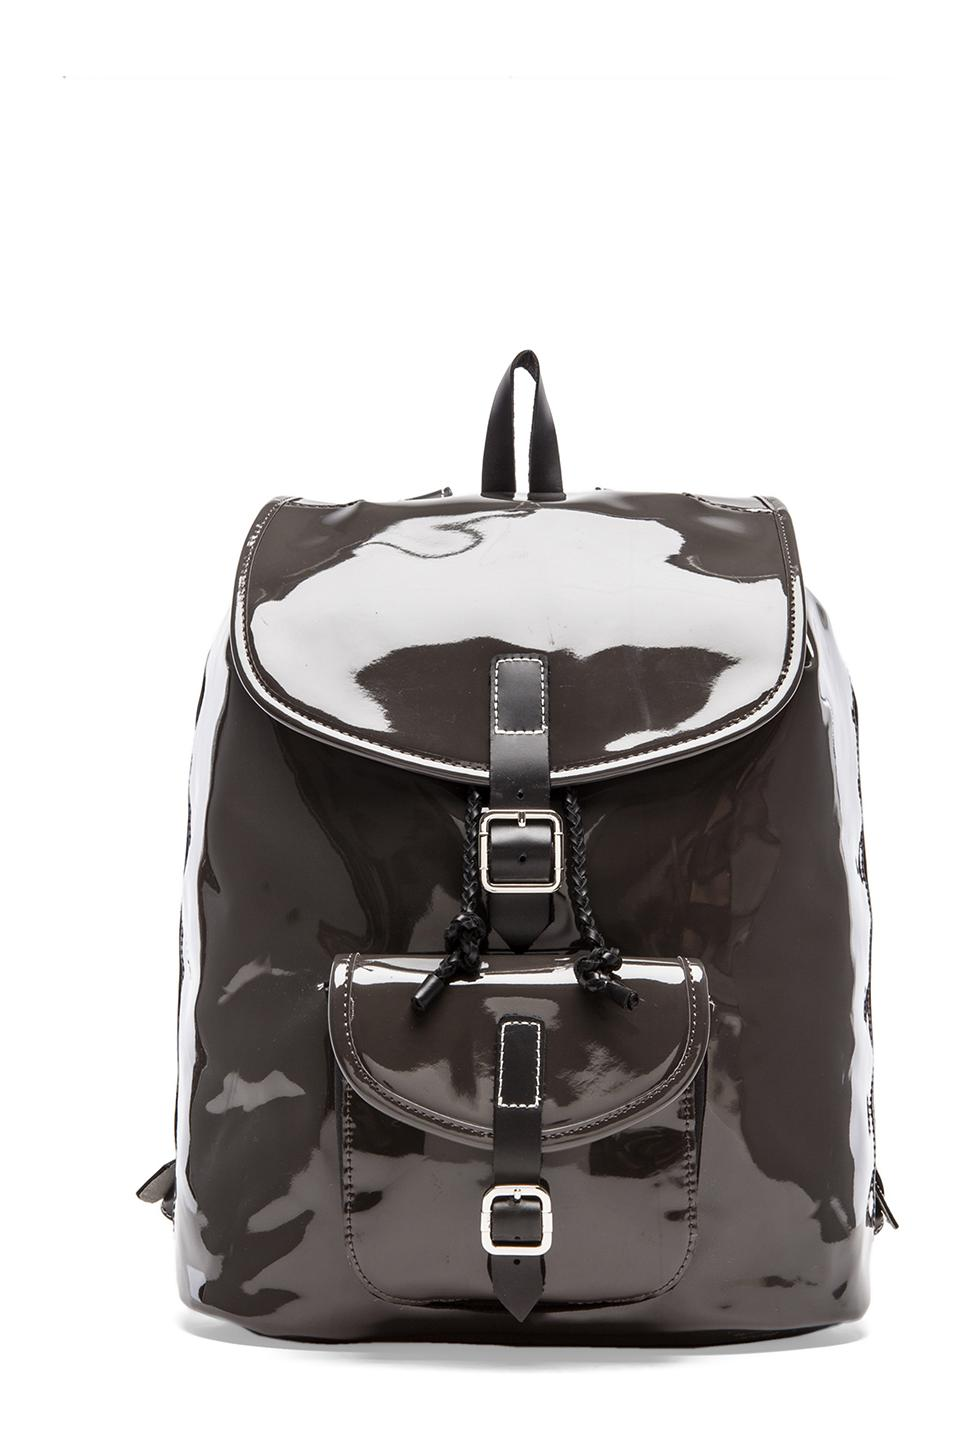 Harper Ave Philip Backpack in Slate Patent